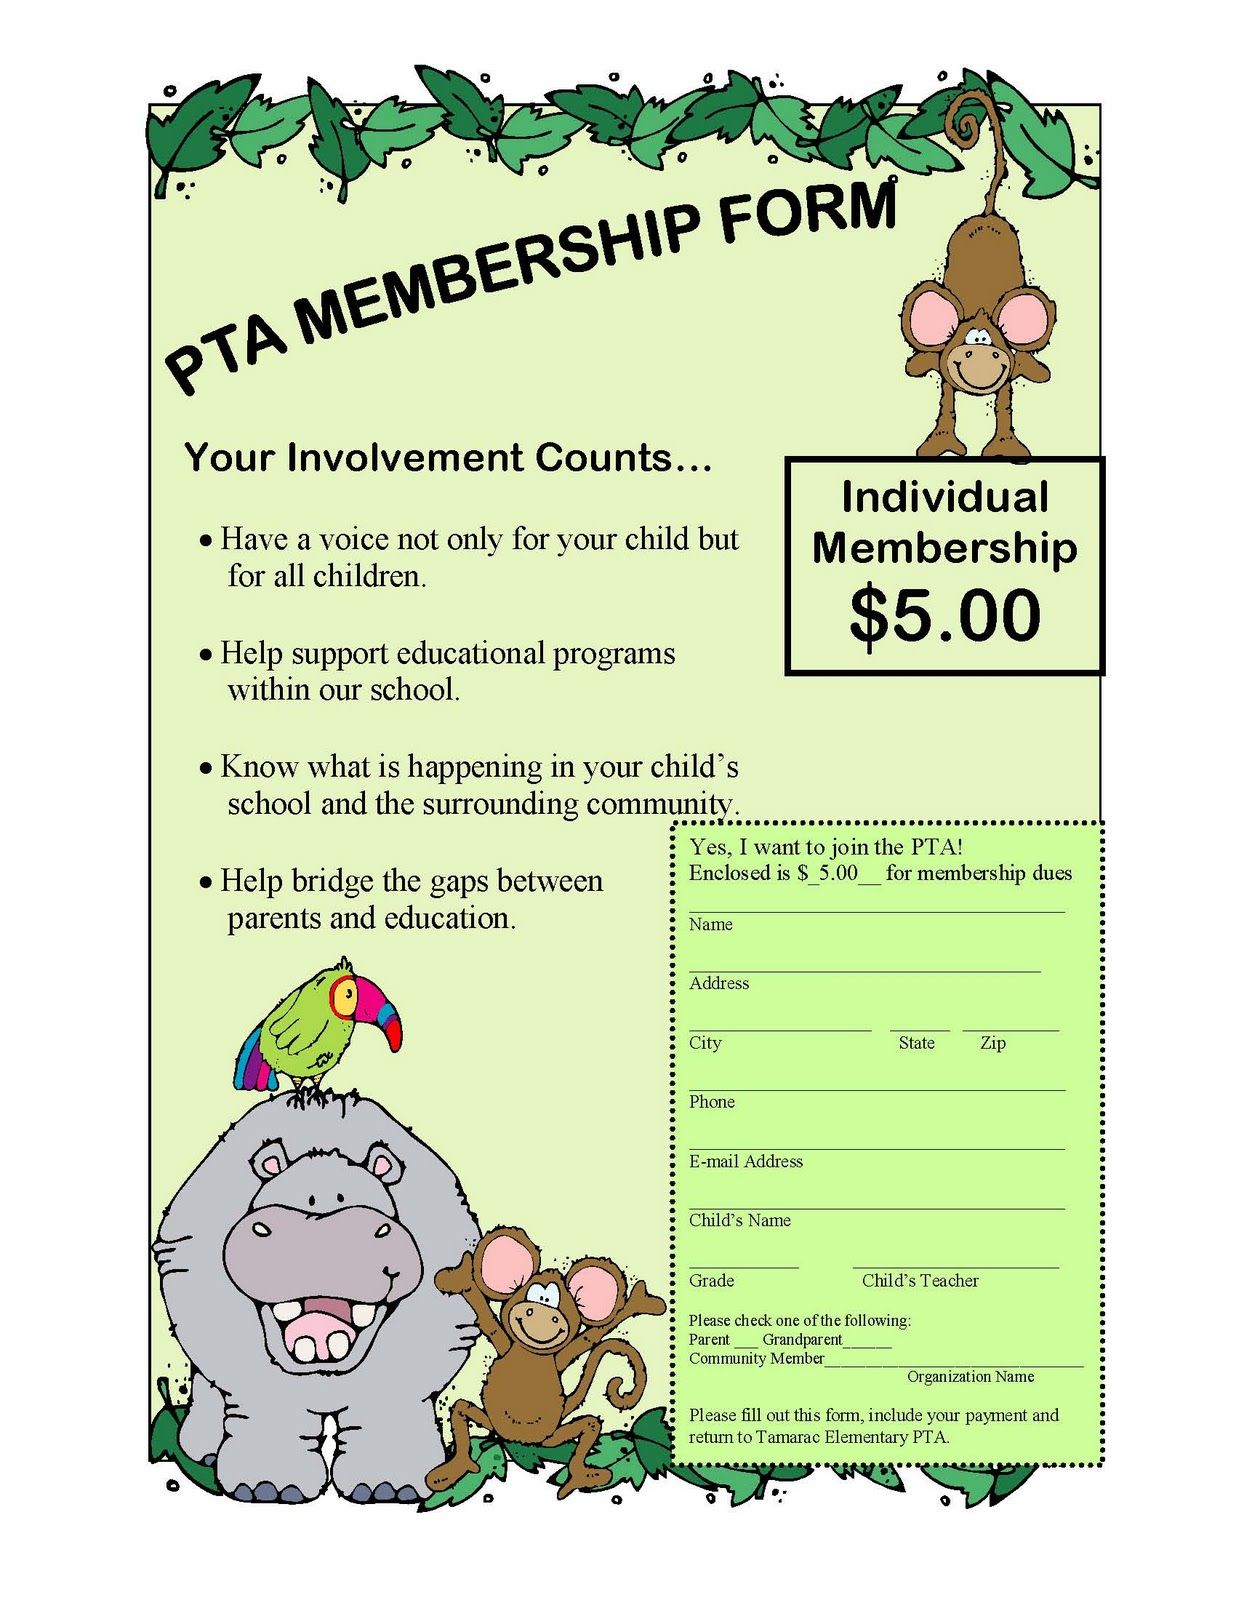 Tiger news pta membership drive through october 31st pta tiger news pta membership drive through october 31st pronofoot35fo Image collections